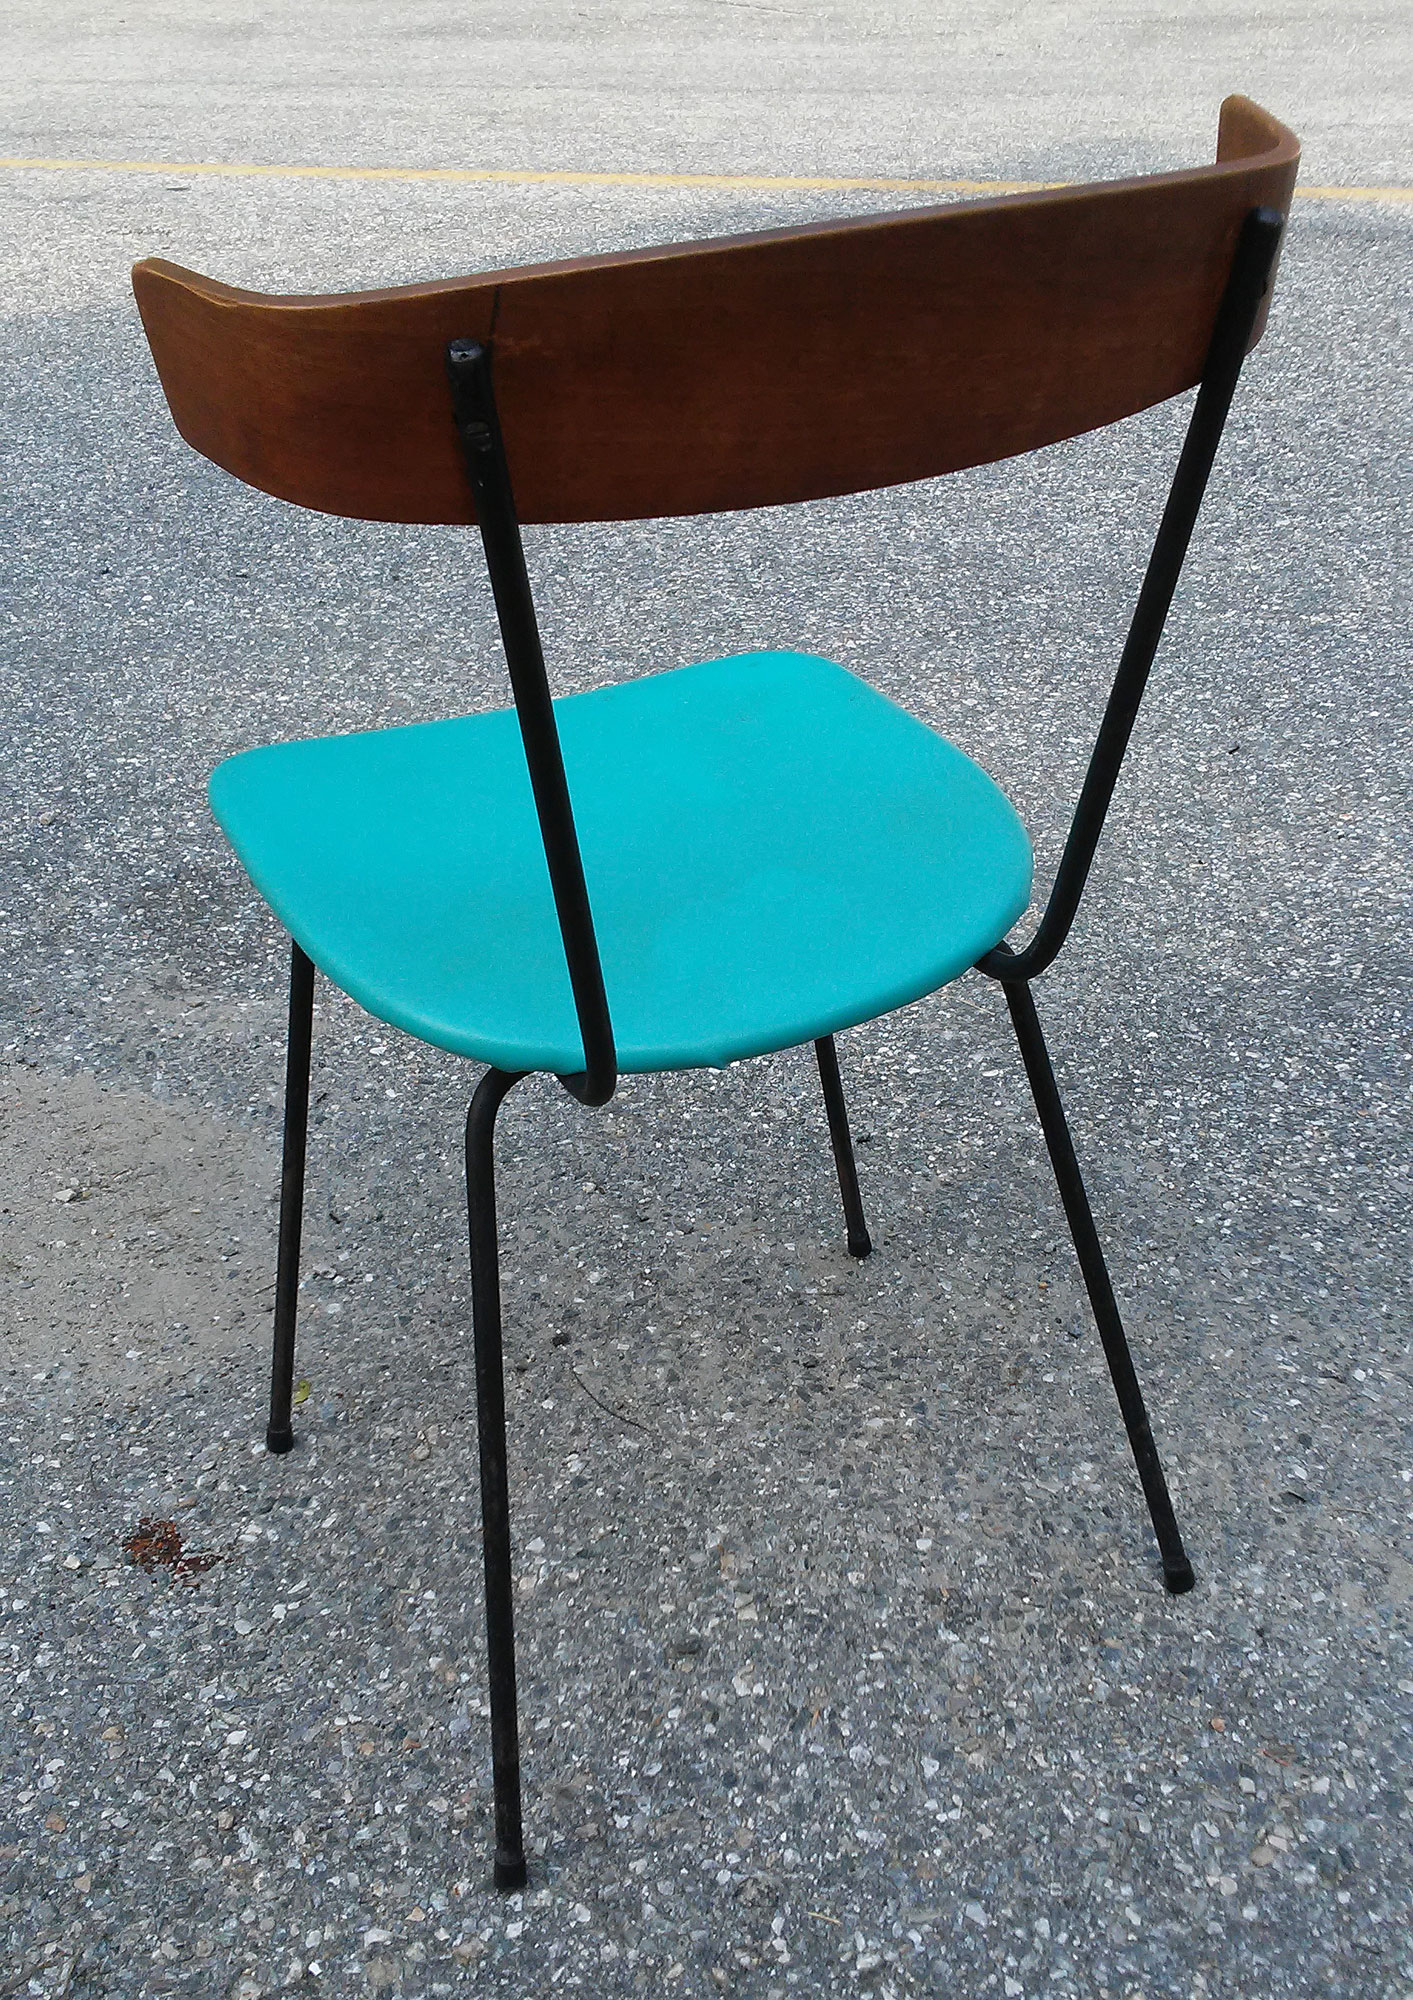 vintage clifford pascoe mid century modern bent wood side chair